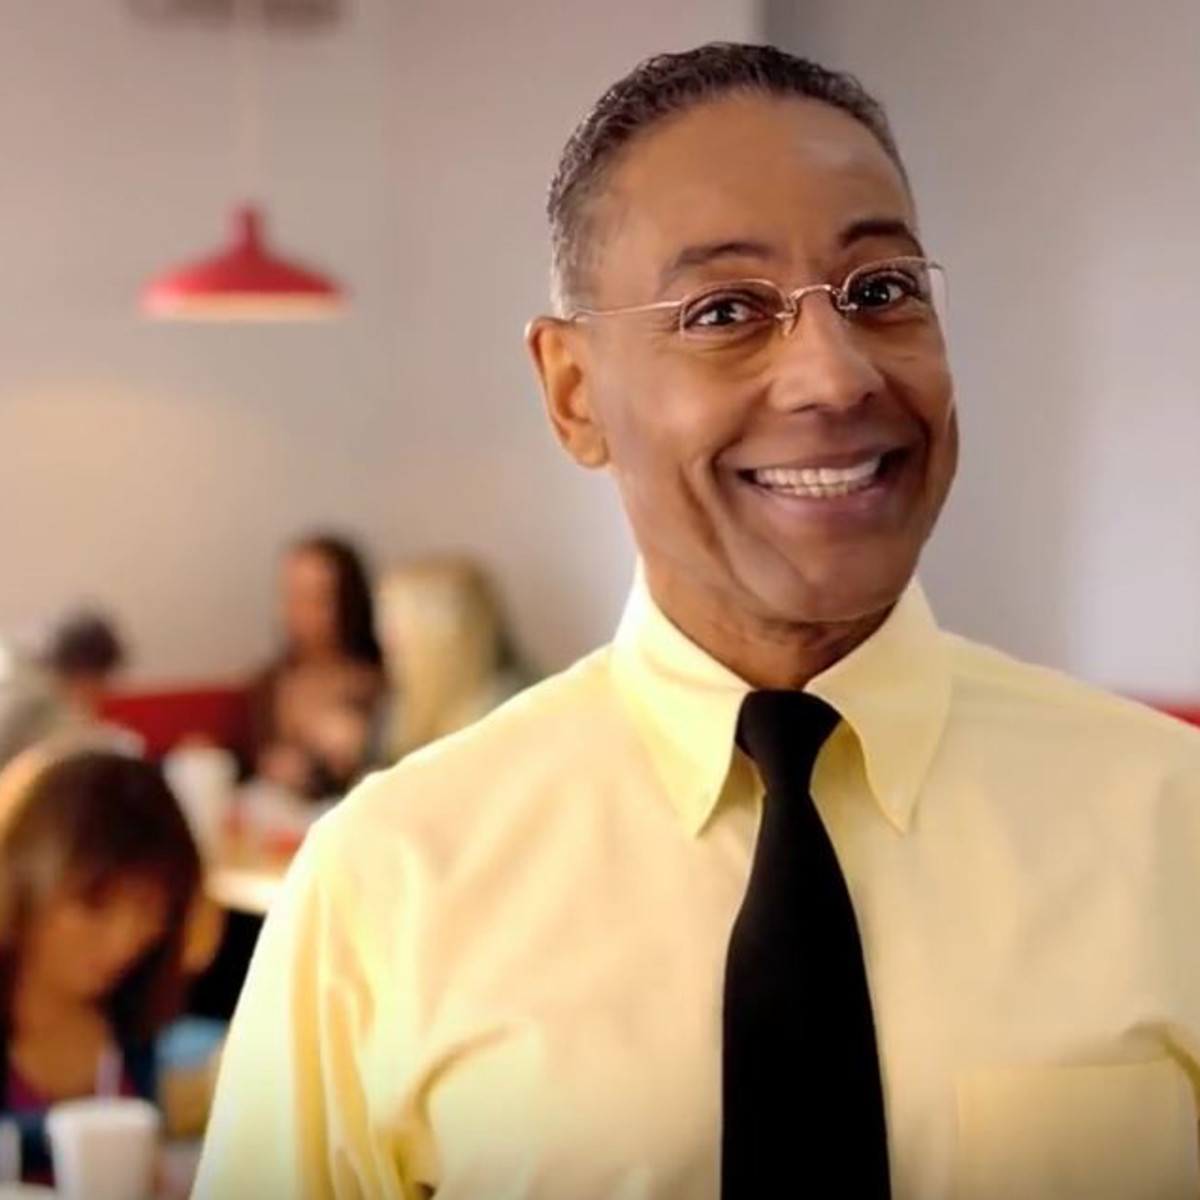 Los Pollos Hermanos commercial